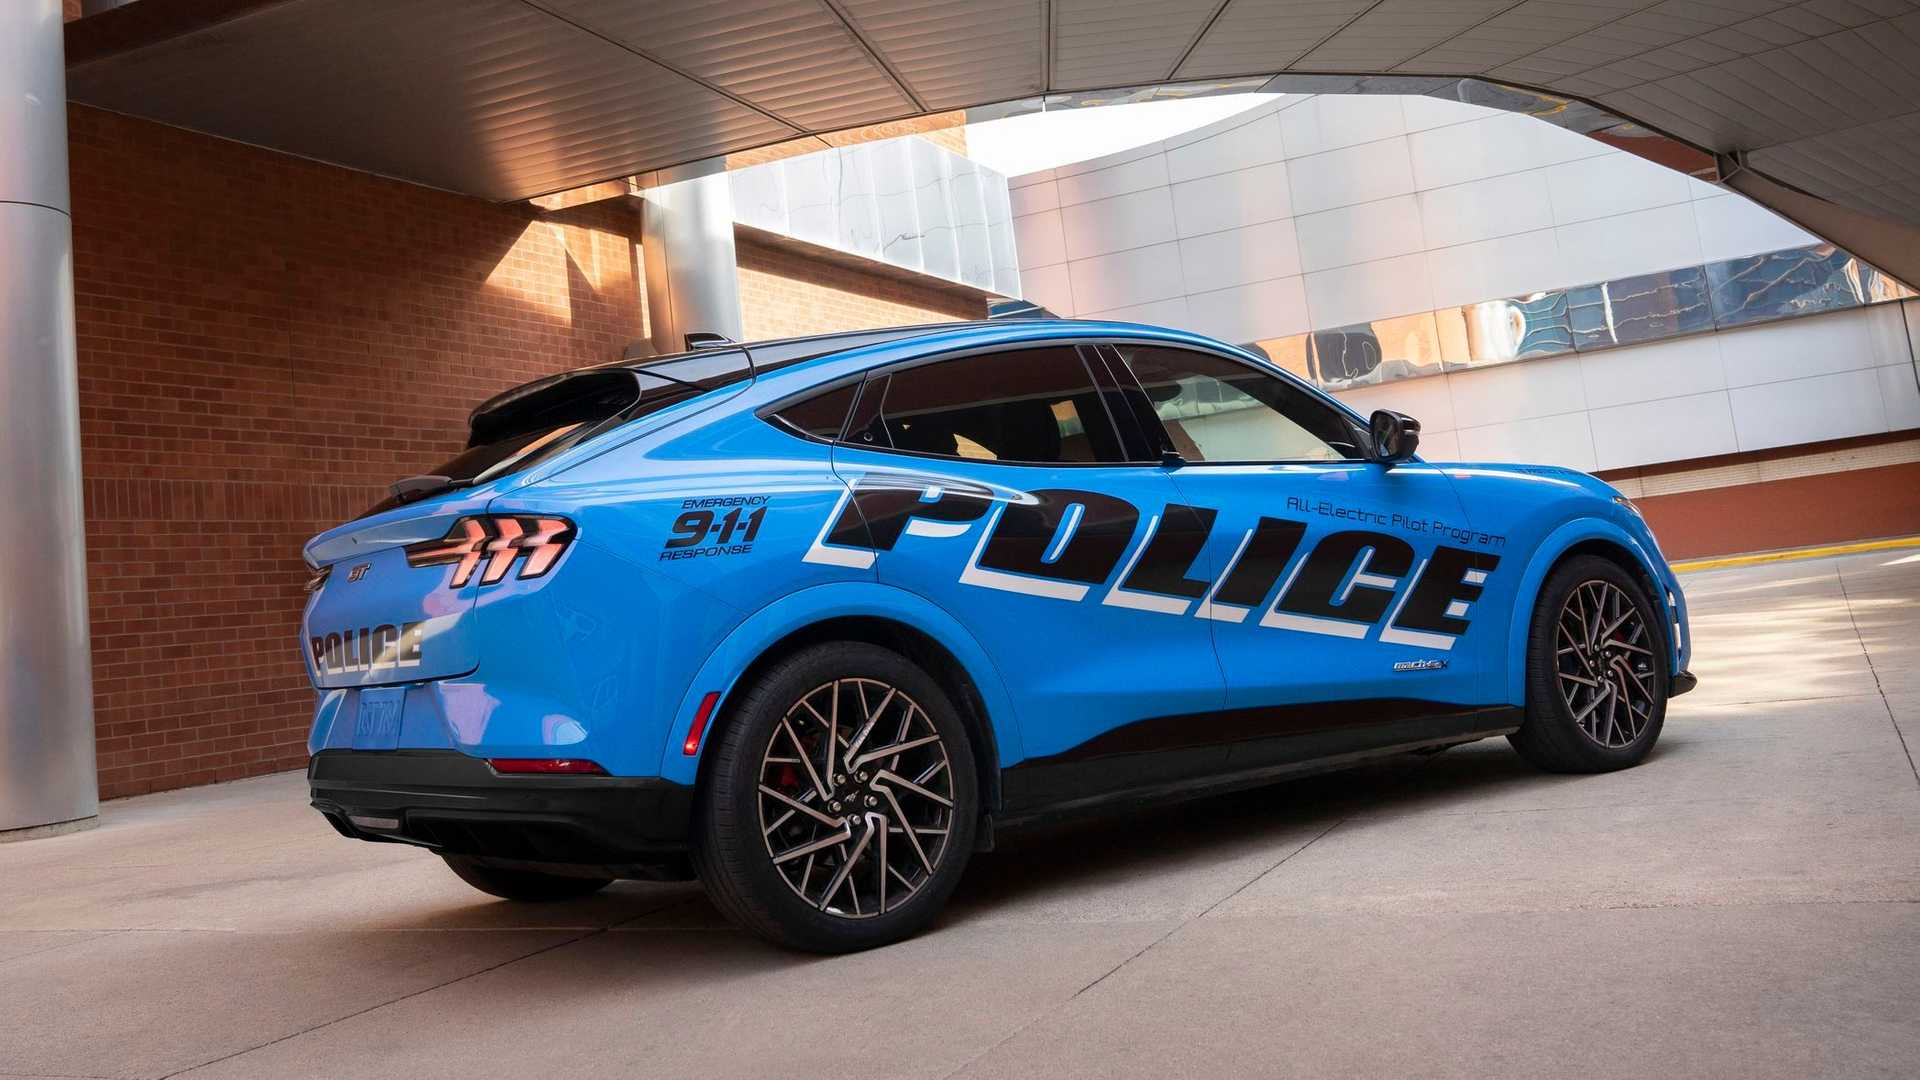 Ford Mustang Mache Police Back